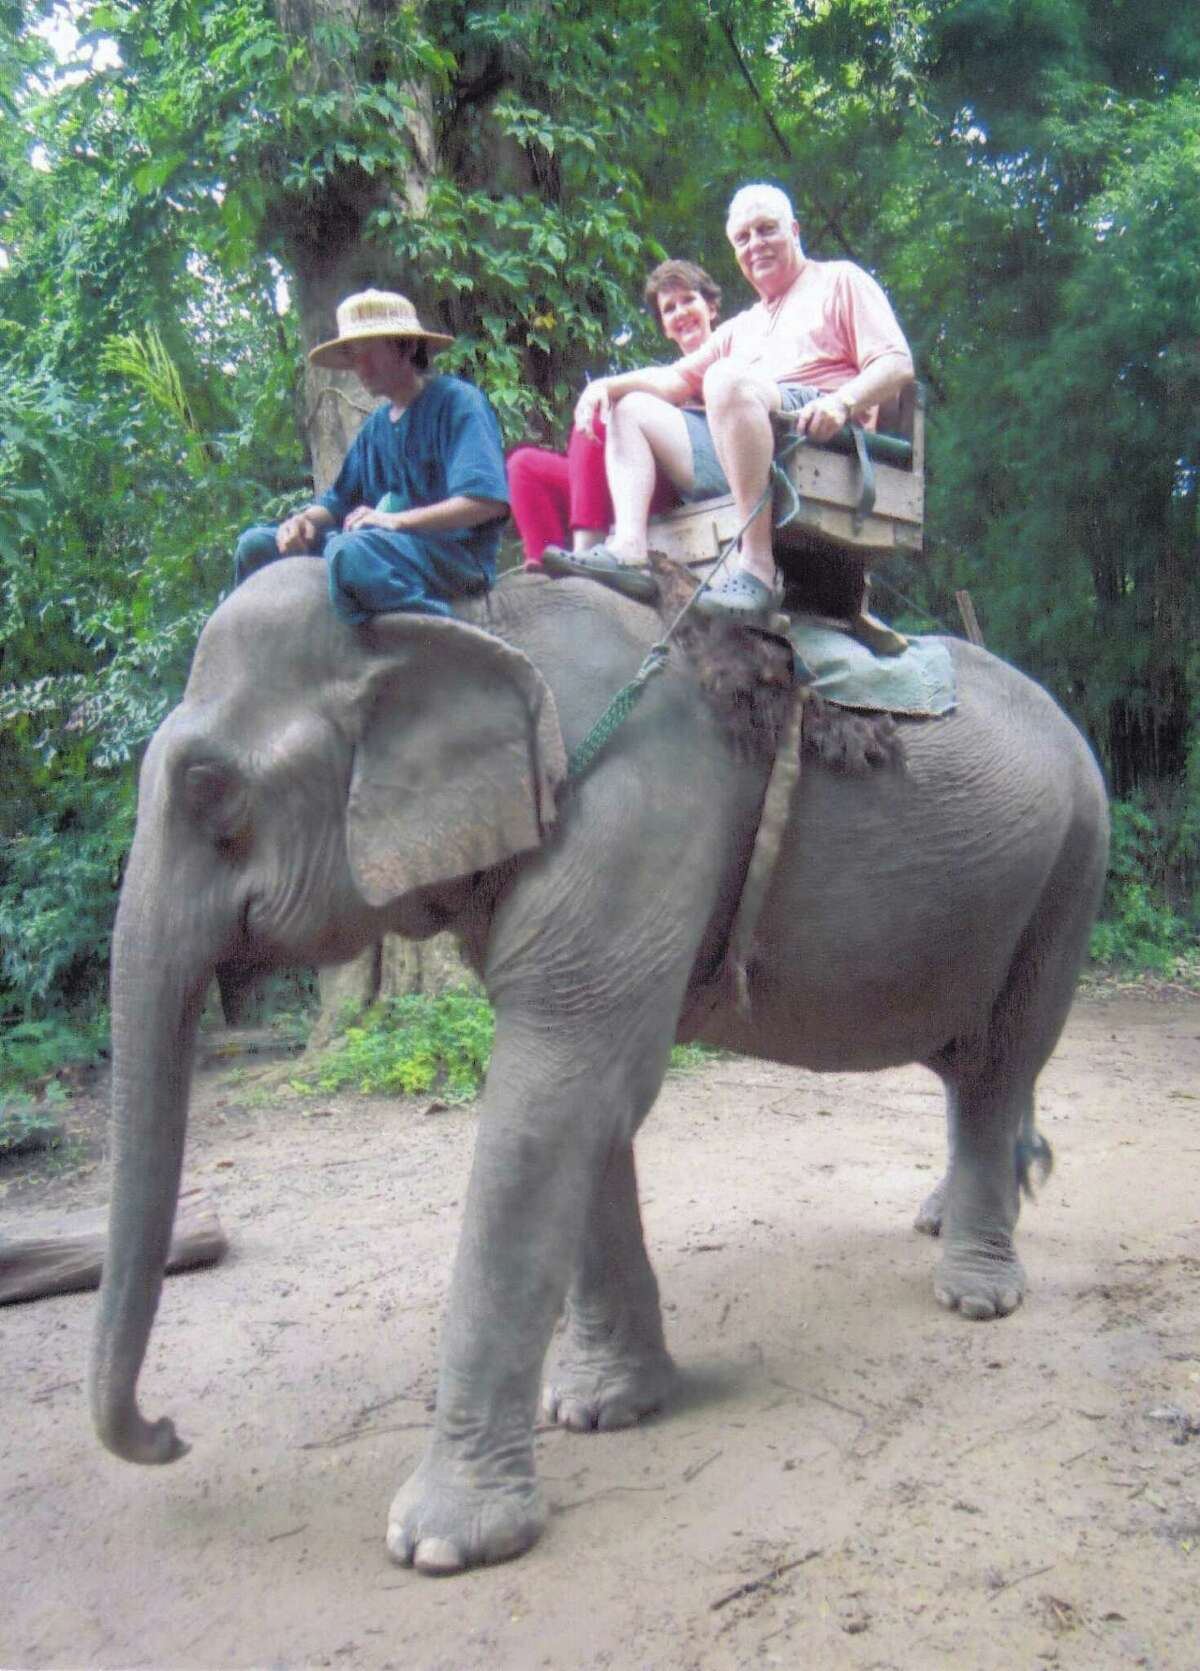 Diana and John Null, who bought last year's auction item to Bali and Singapore, enjoyed a once in a lifetime experience riding on an elephant. The same item, with some added destinations, is being offered this year.